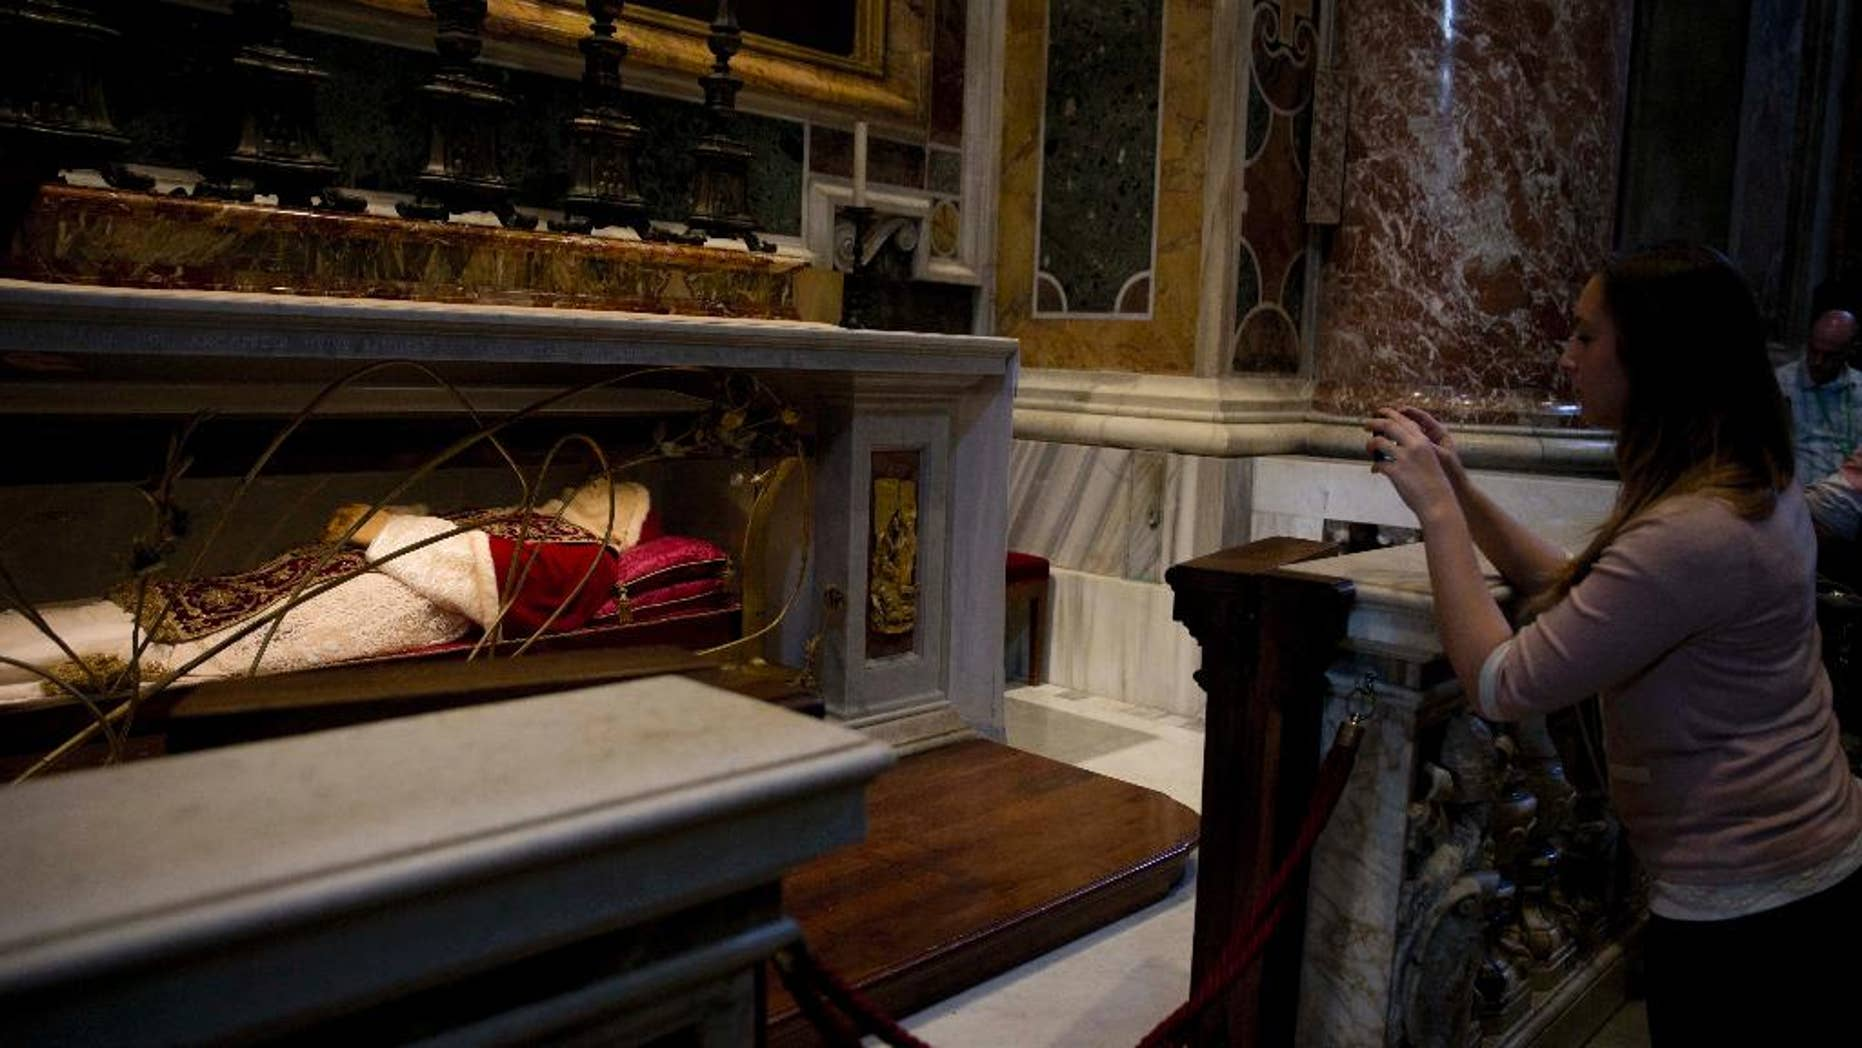 A woman takes pictures of the tomb of Pope John XXIII in St. Peter's Basilica at the Vatican, Thursday, April 24, 2014. Hundred thousands of pilgrims and faithful are expected to reach Rome to attend the scheduled April 27 ceremony at the Vatican in which Pope Francis will elevate in a solemn ceremony John XXIII and John Paul II to sainthood. (AP Photo/Alessandra Tarantino)